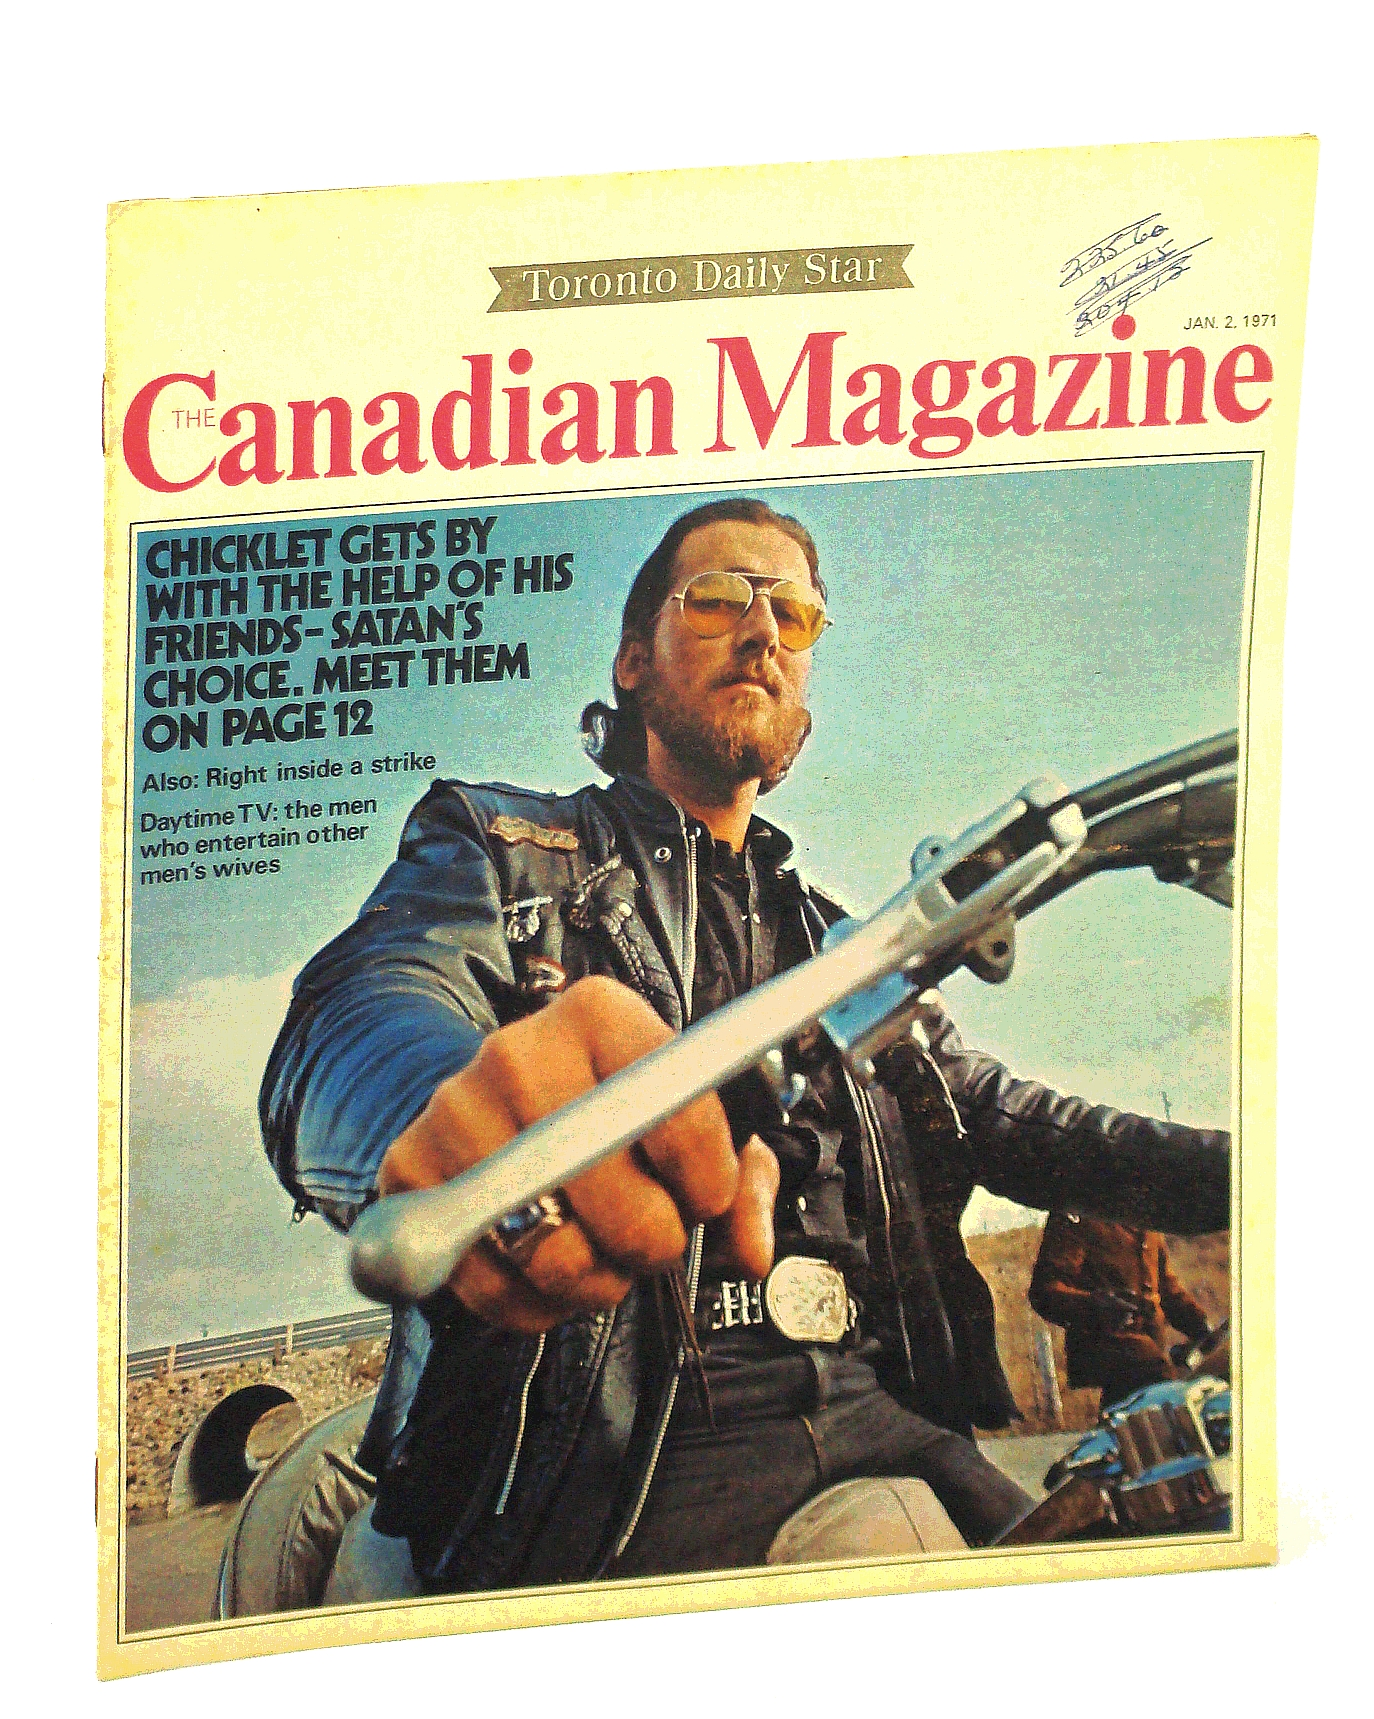 Image for The Canadian Magazine, 2 January [Jan.] 1971 - Meet the Satan's Choice Motorcycle Gang, Whose Members include Actor Art Hindle!